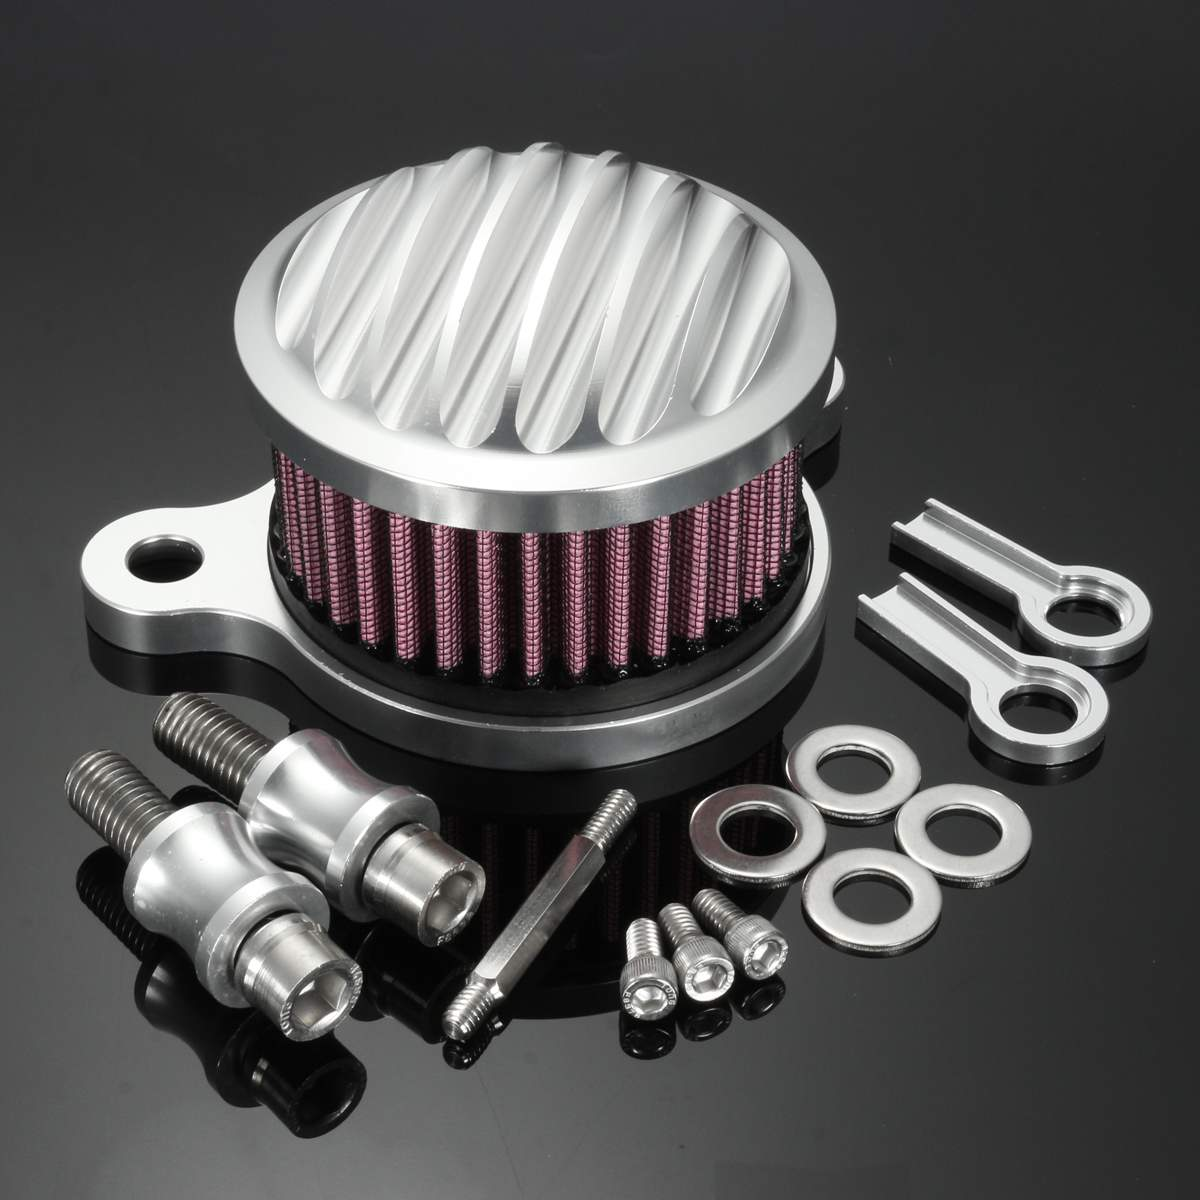 Motorcycle Air Filter Cleaner Intake Filters For Harley Sportster XL883 XL1200 2004-2016